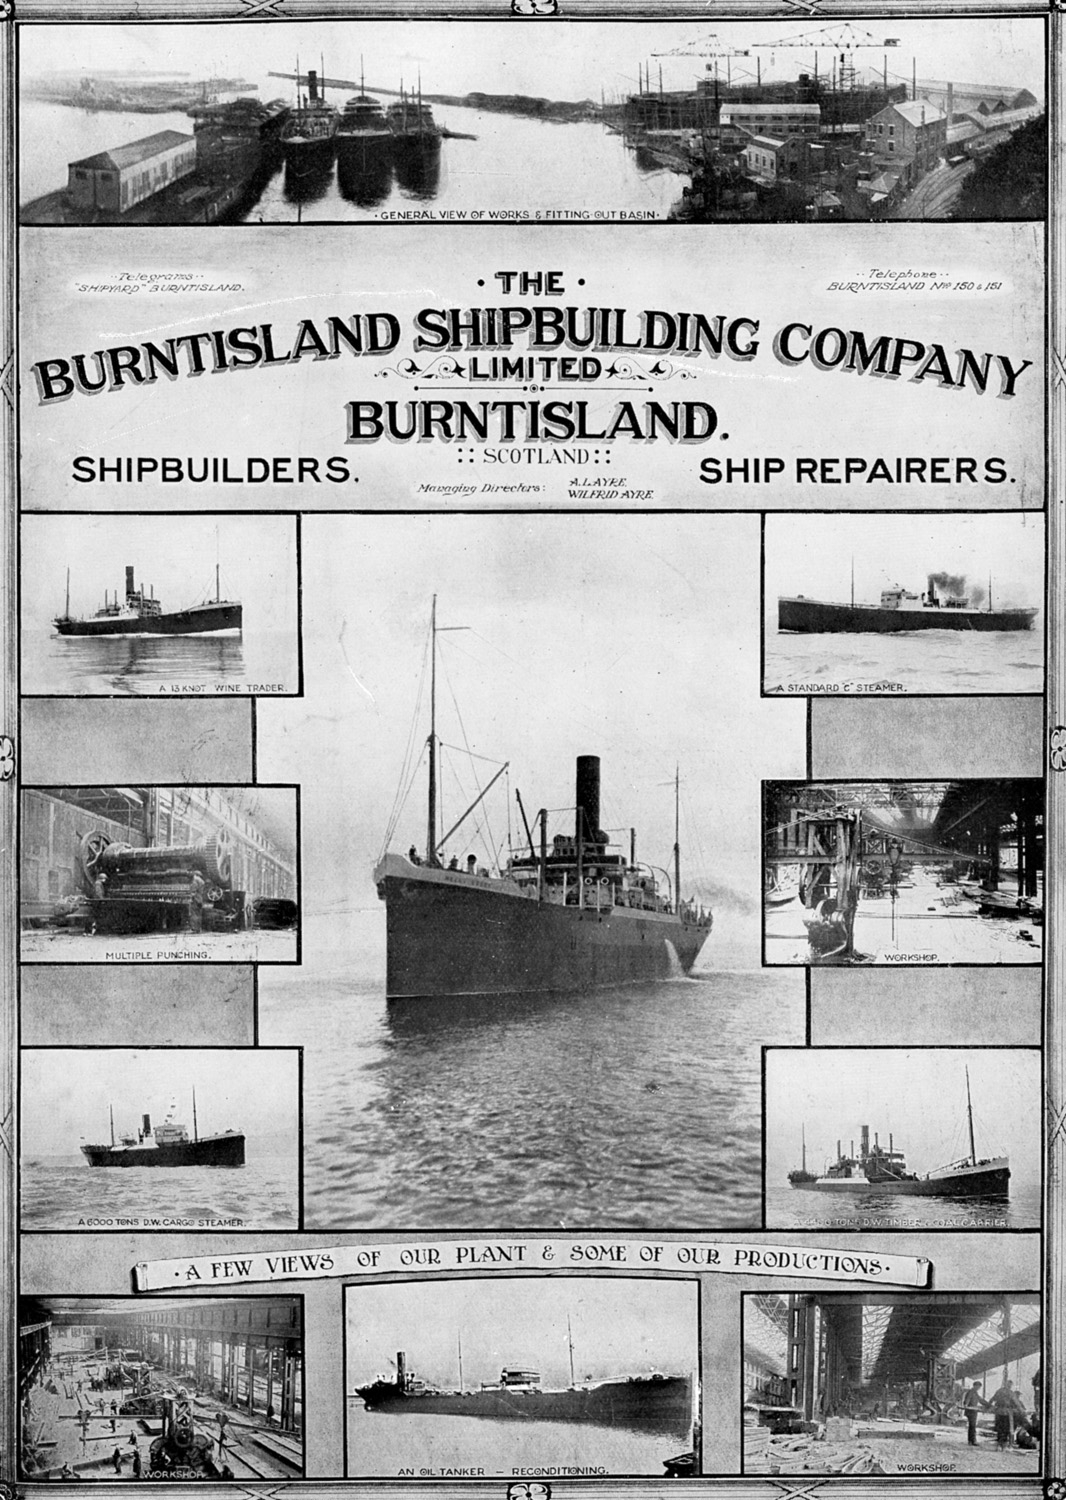 Shipyard advertisement from 1923